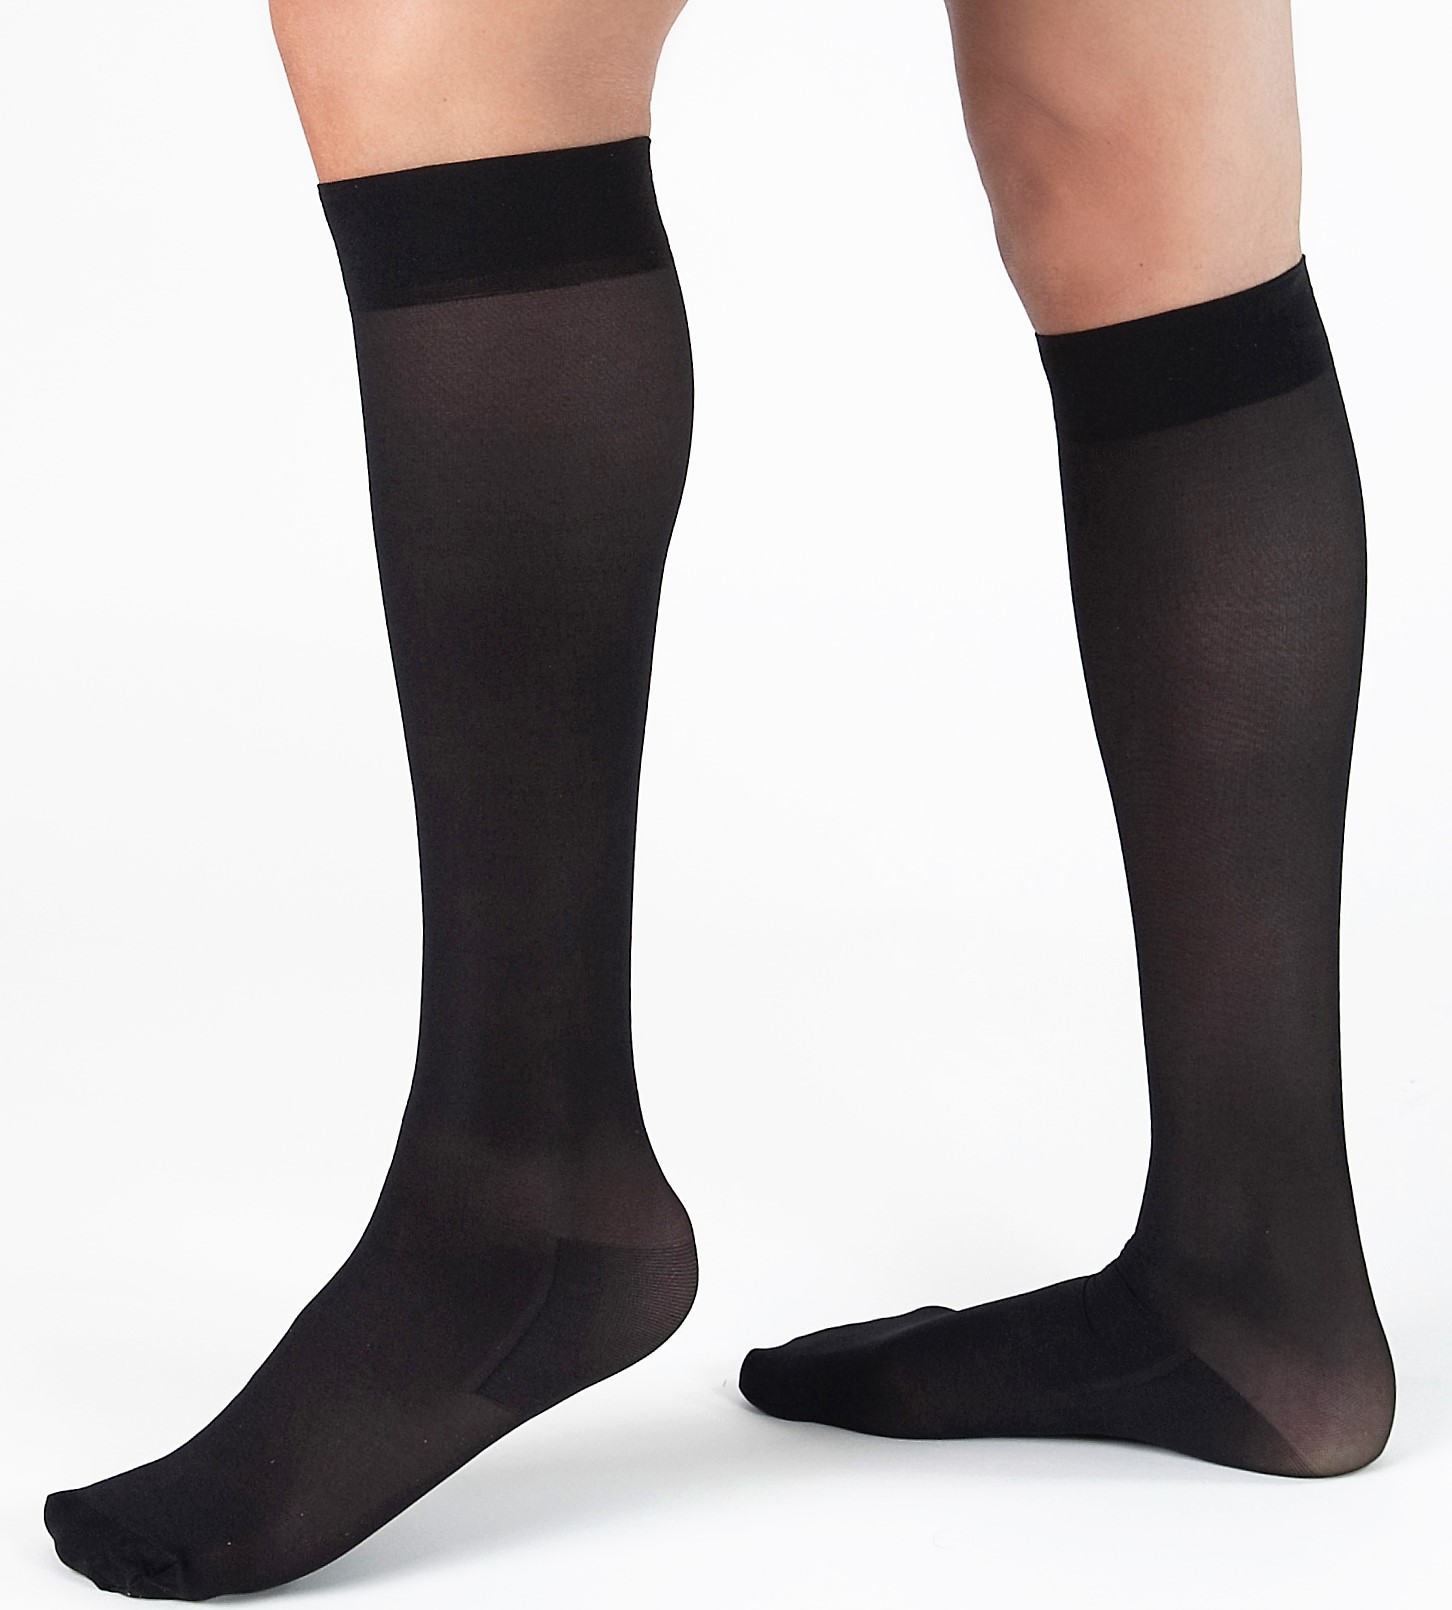 women's travel stockings